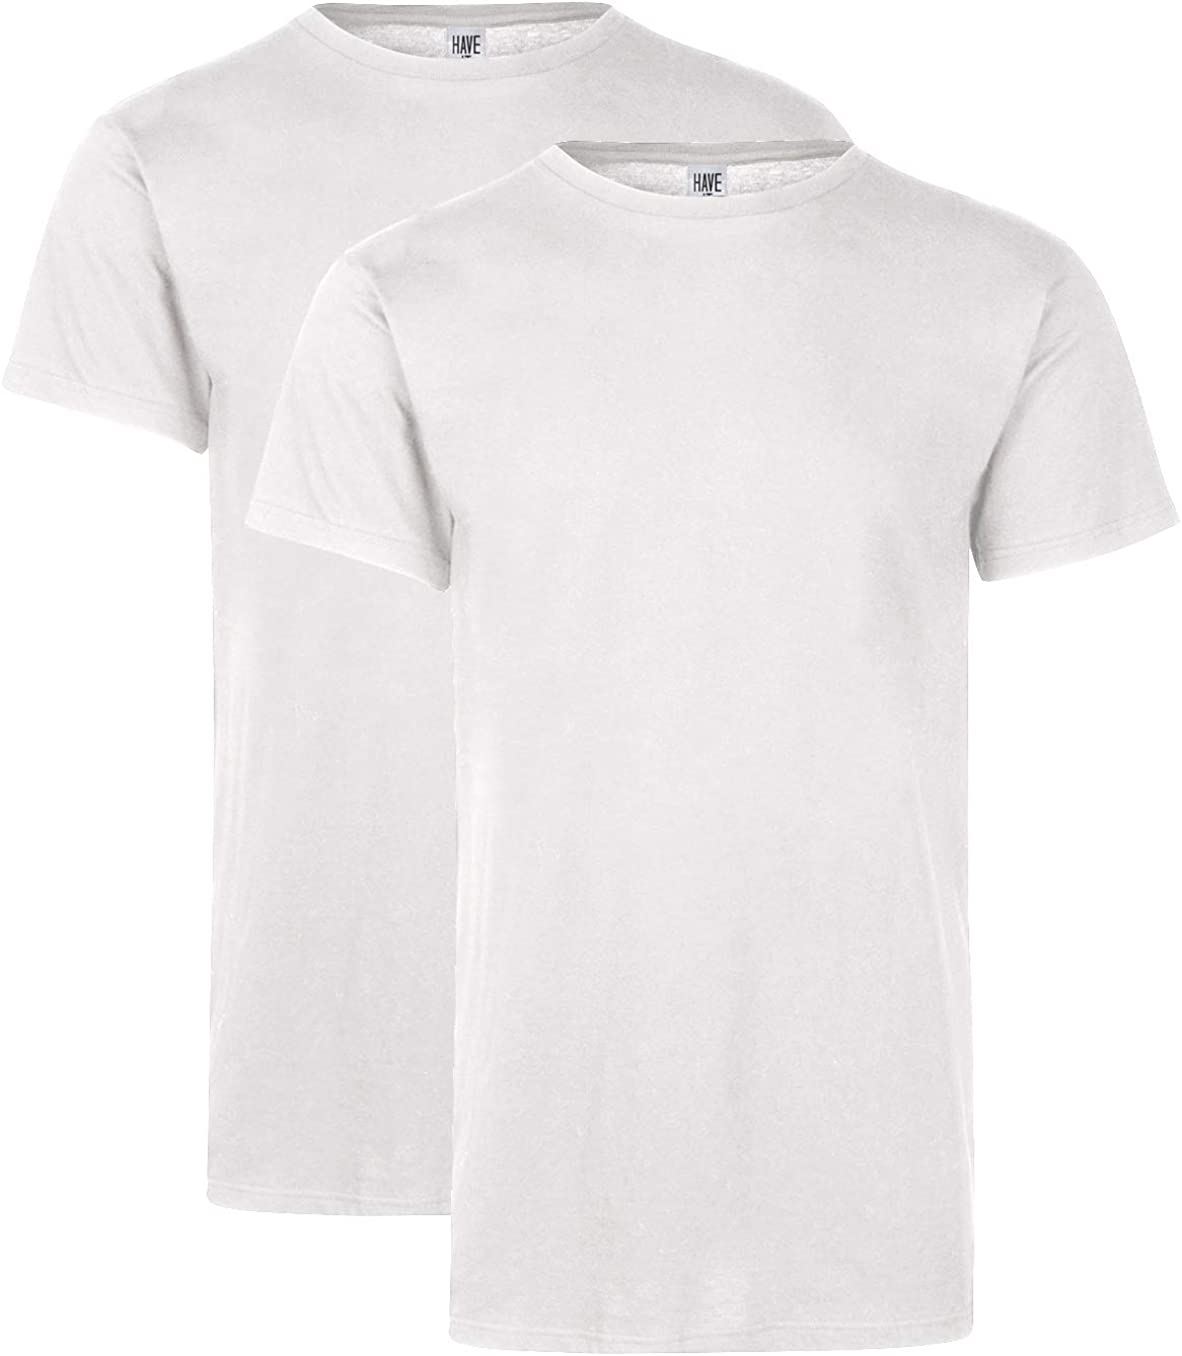 Have It Tall Undershirts for Men and Women | 2 Pack